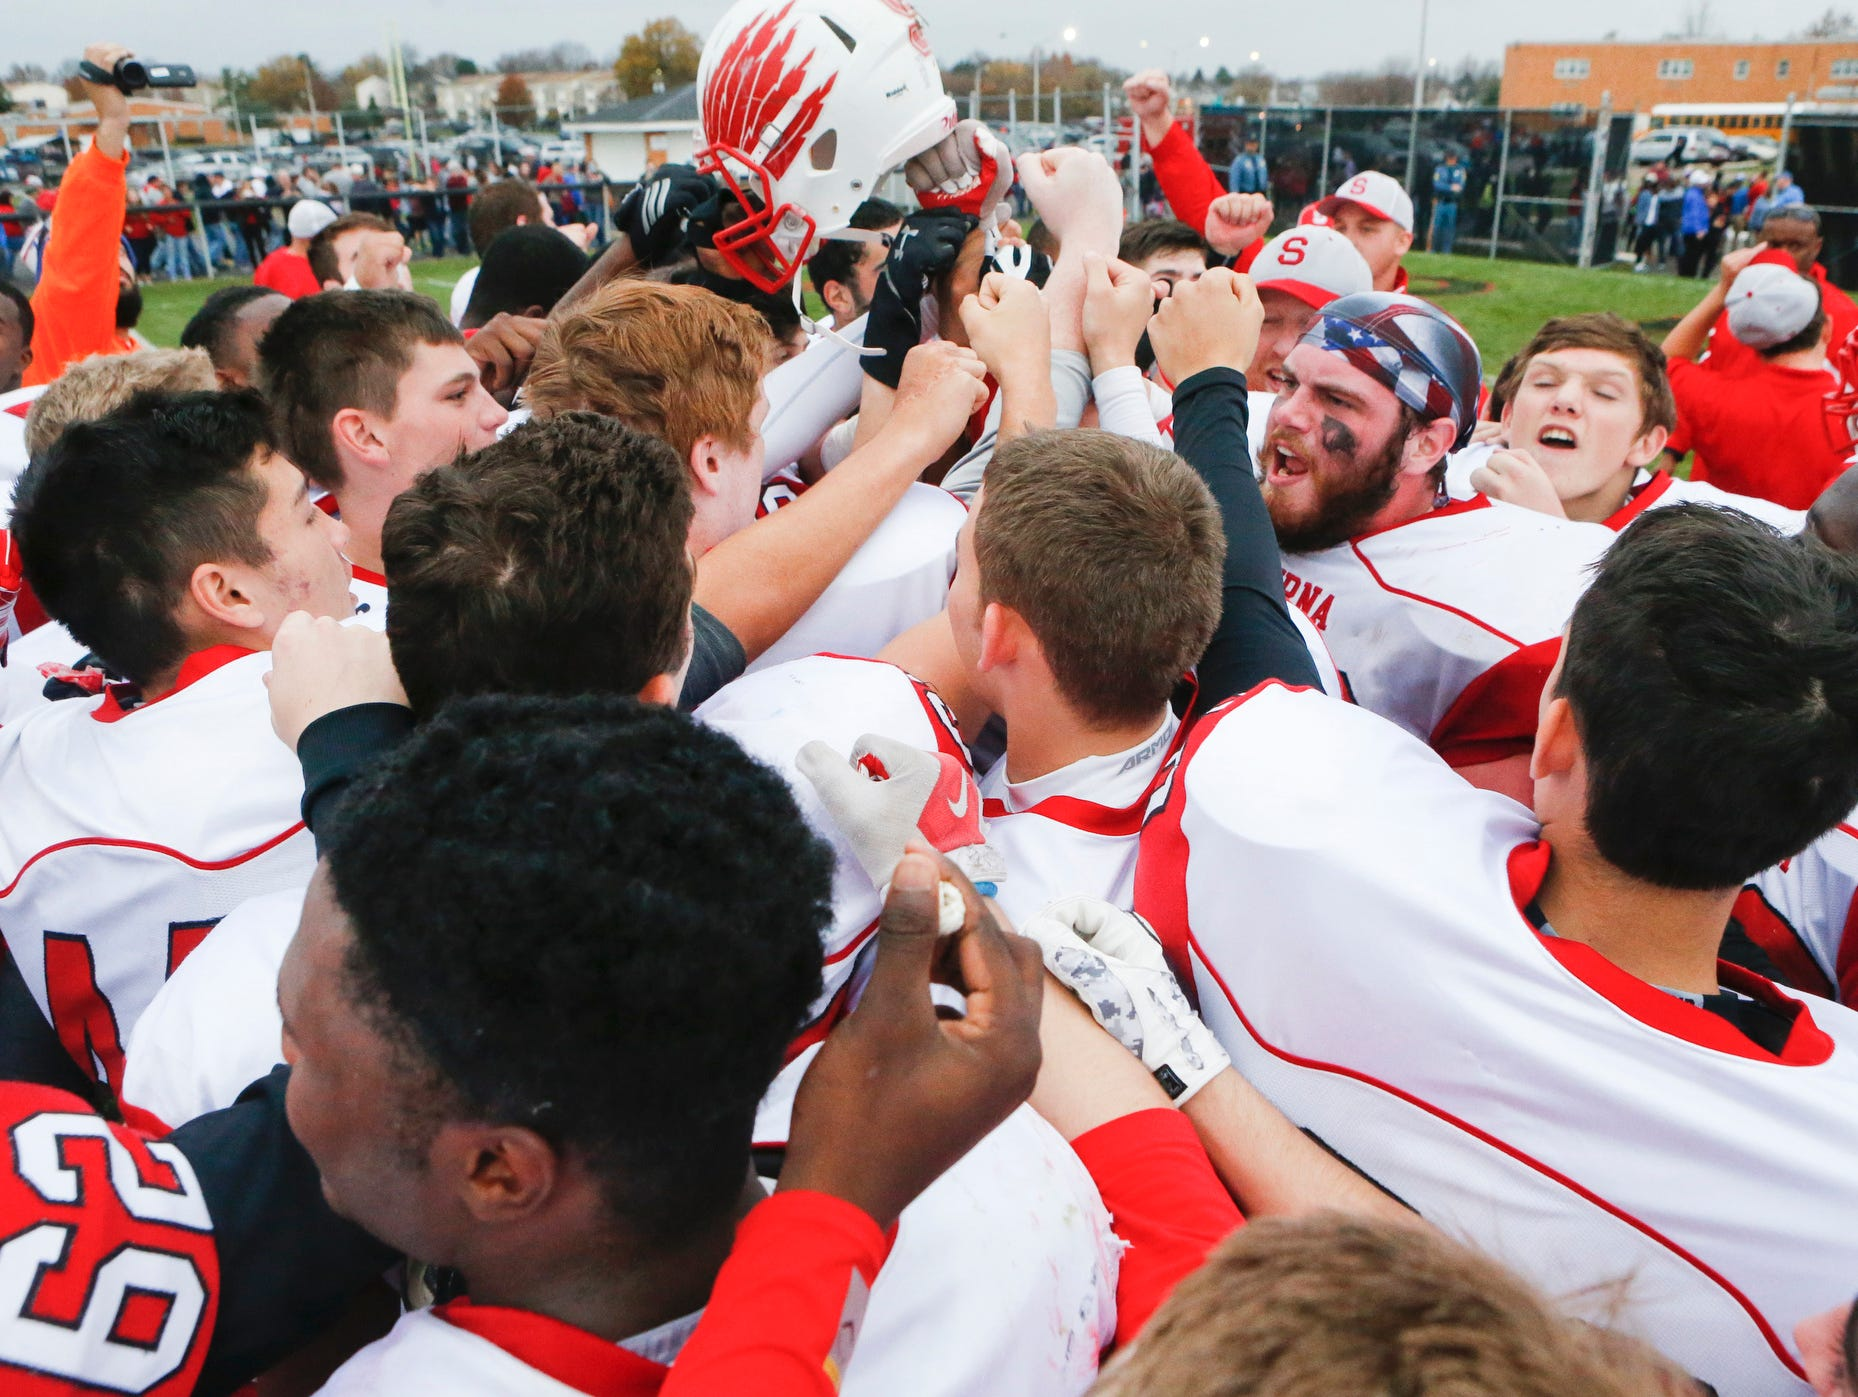 The Eagles celebrate as a team after beating William Penn 30-13 in a semifinal of the DIAA Division I state tournament at Bill Cole Stadium Saturday.